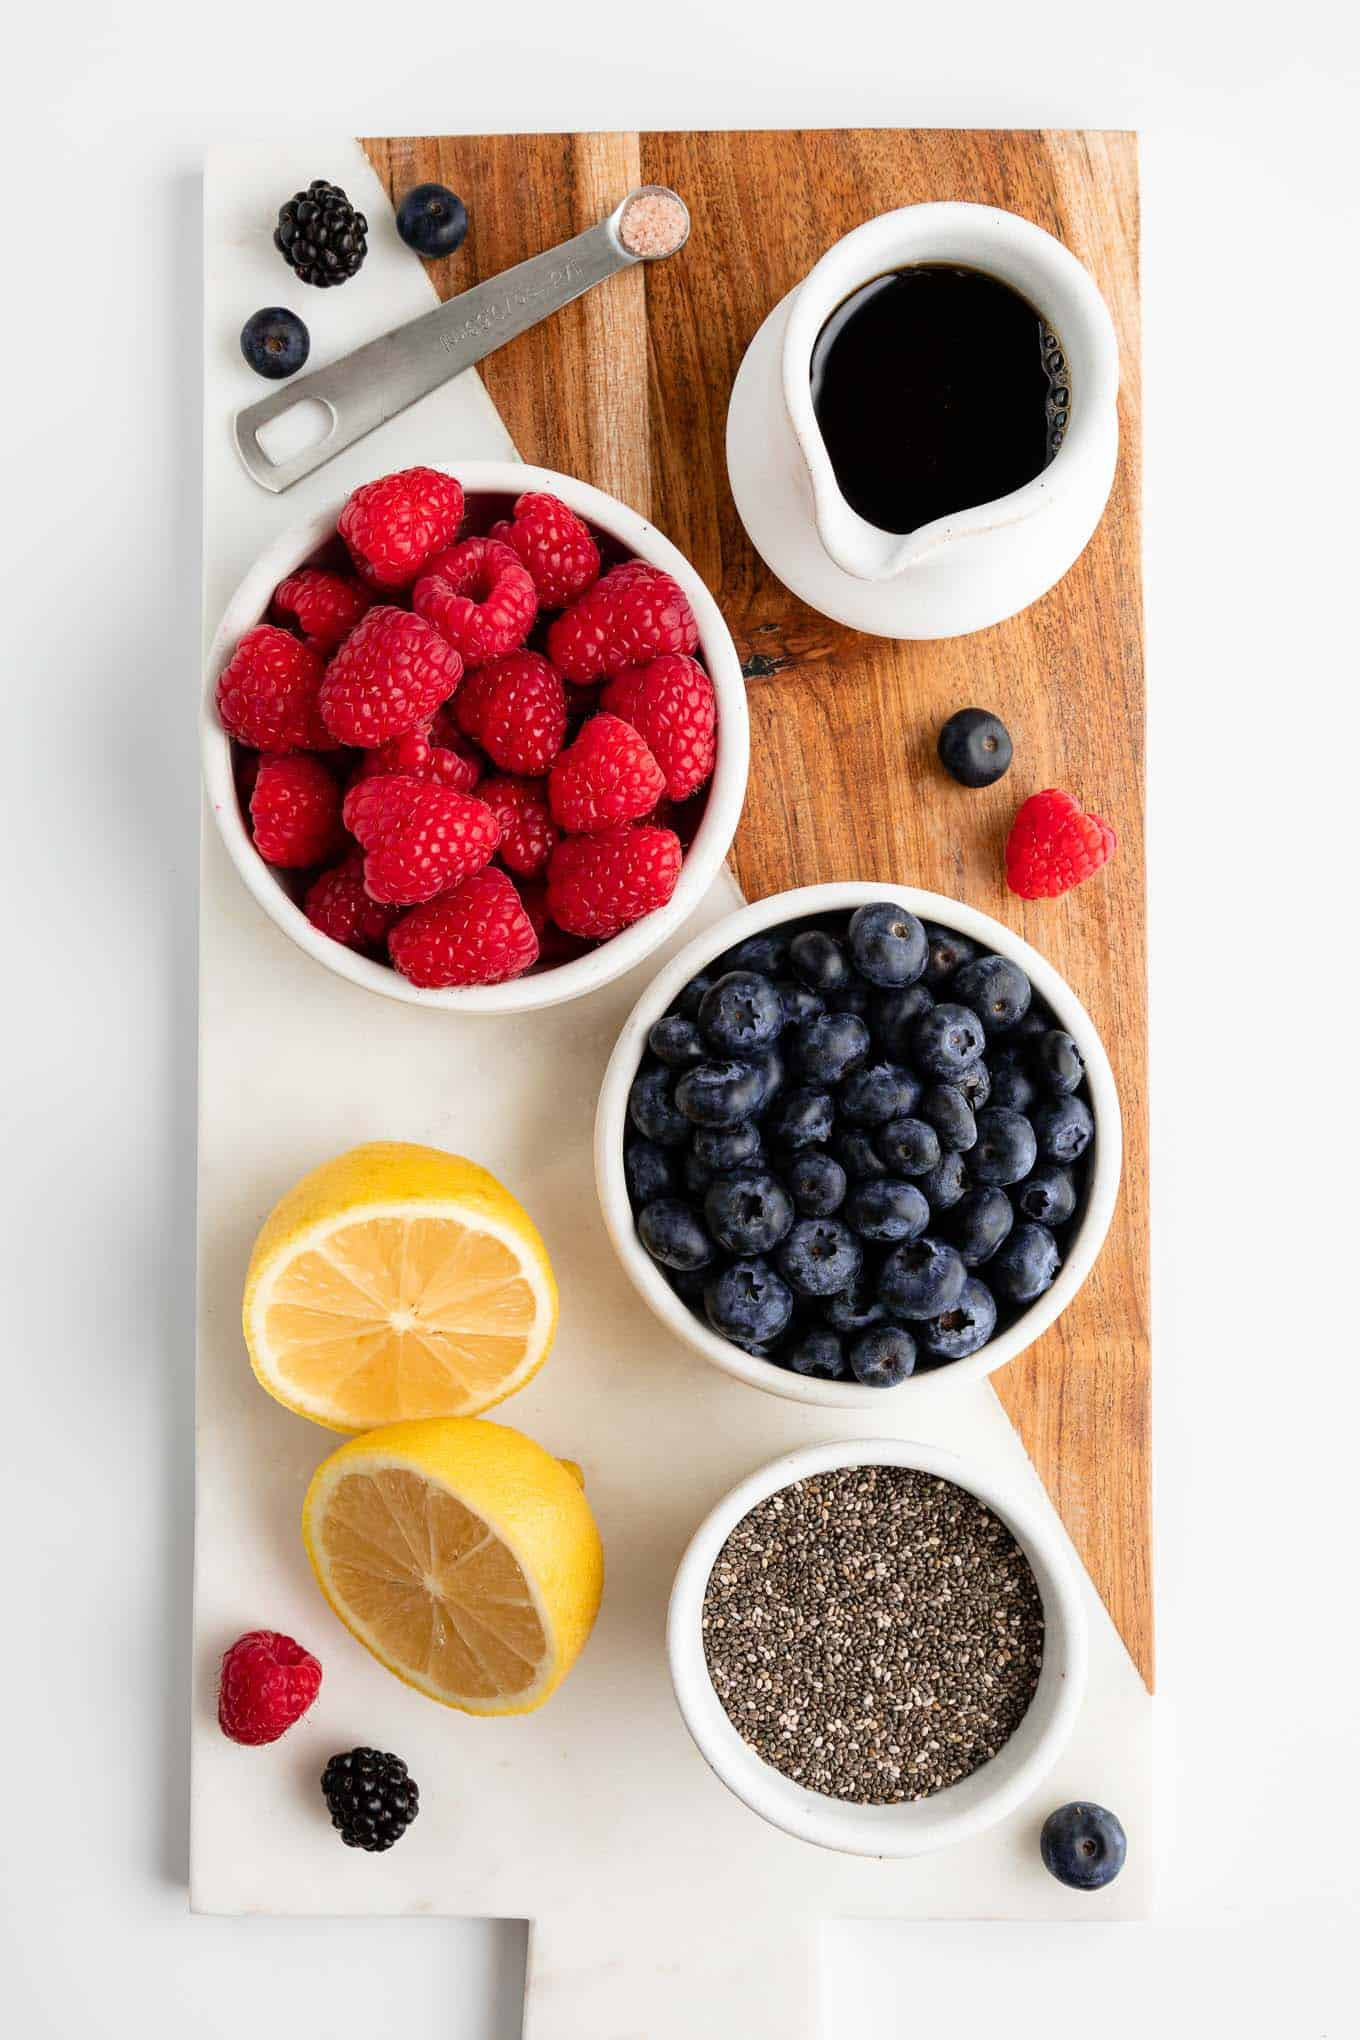 serving board topped with a bowl of blueberries, a bowl of raspberries, a sliced lemon, chia seeds, and pitcher of maple syrup